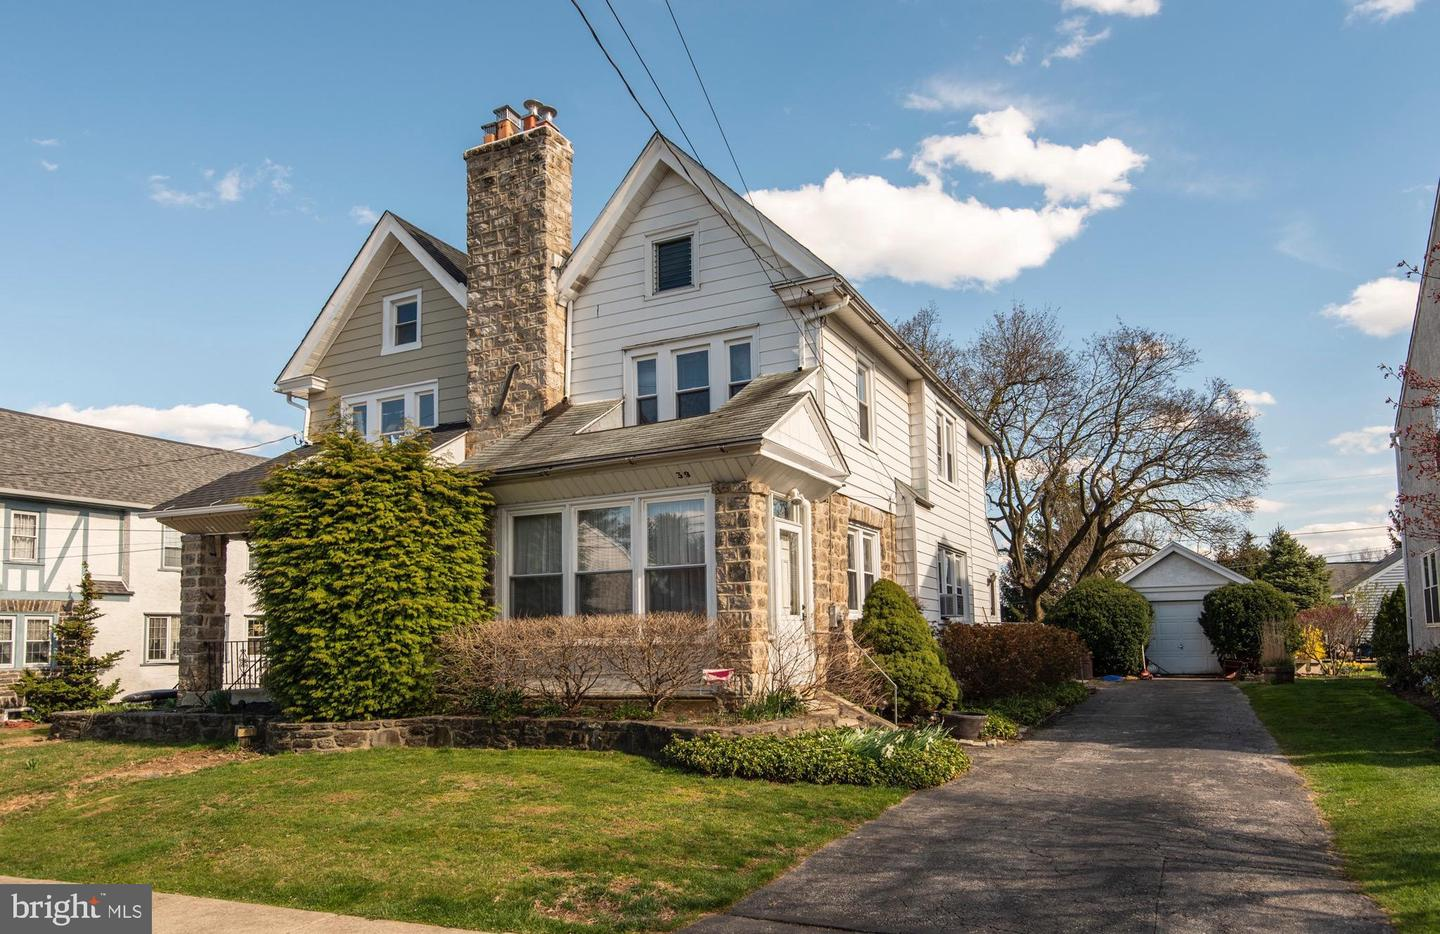 39 Columbus Avenue Havertown, PA 19083